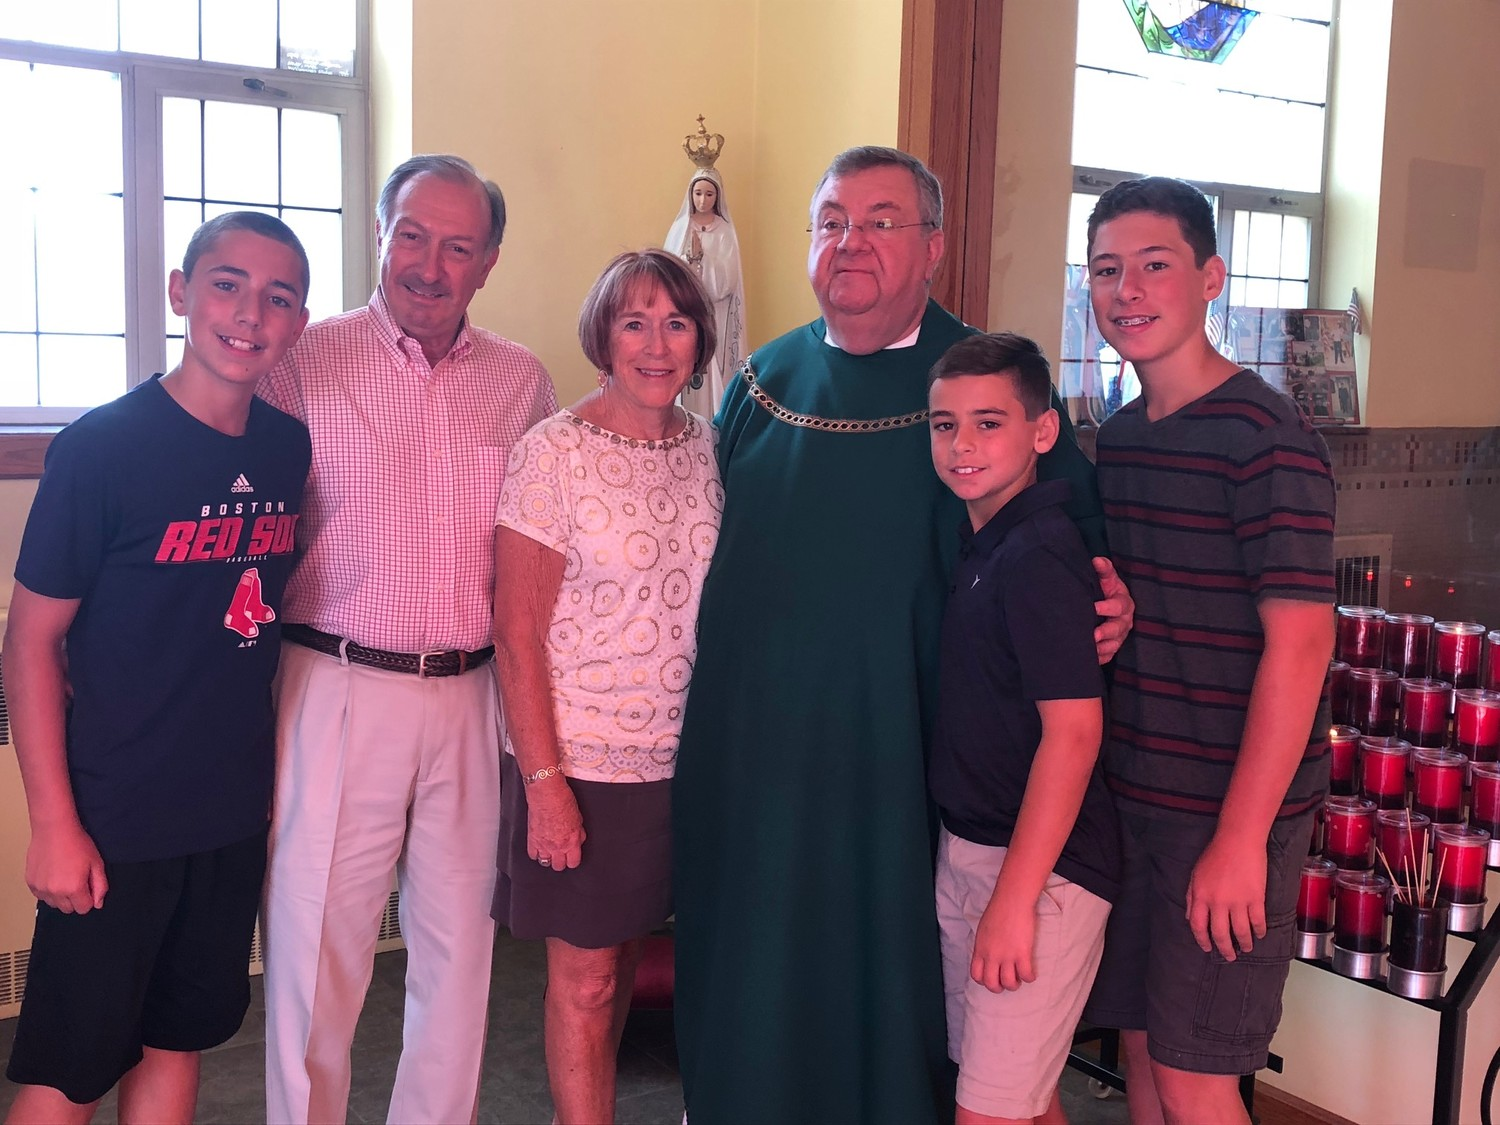 L-R: Josh Cote, Fred Guarino, Pamela Guarino, Fr. Green, Ben Cote, Alex Cote